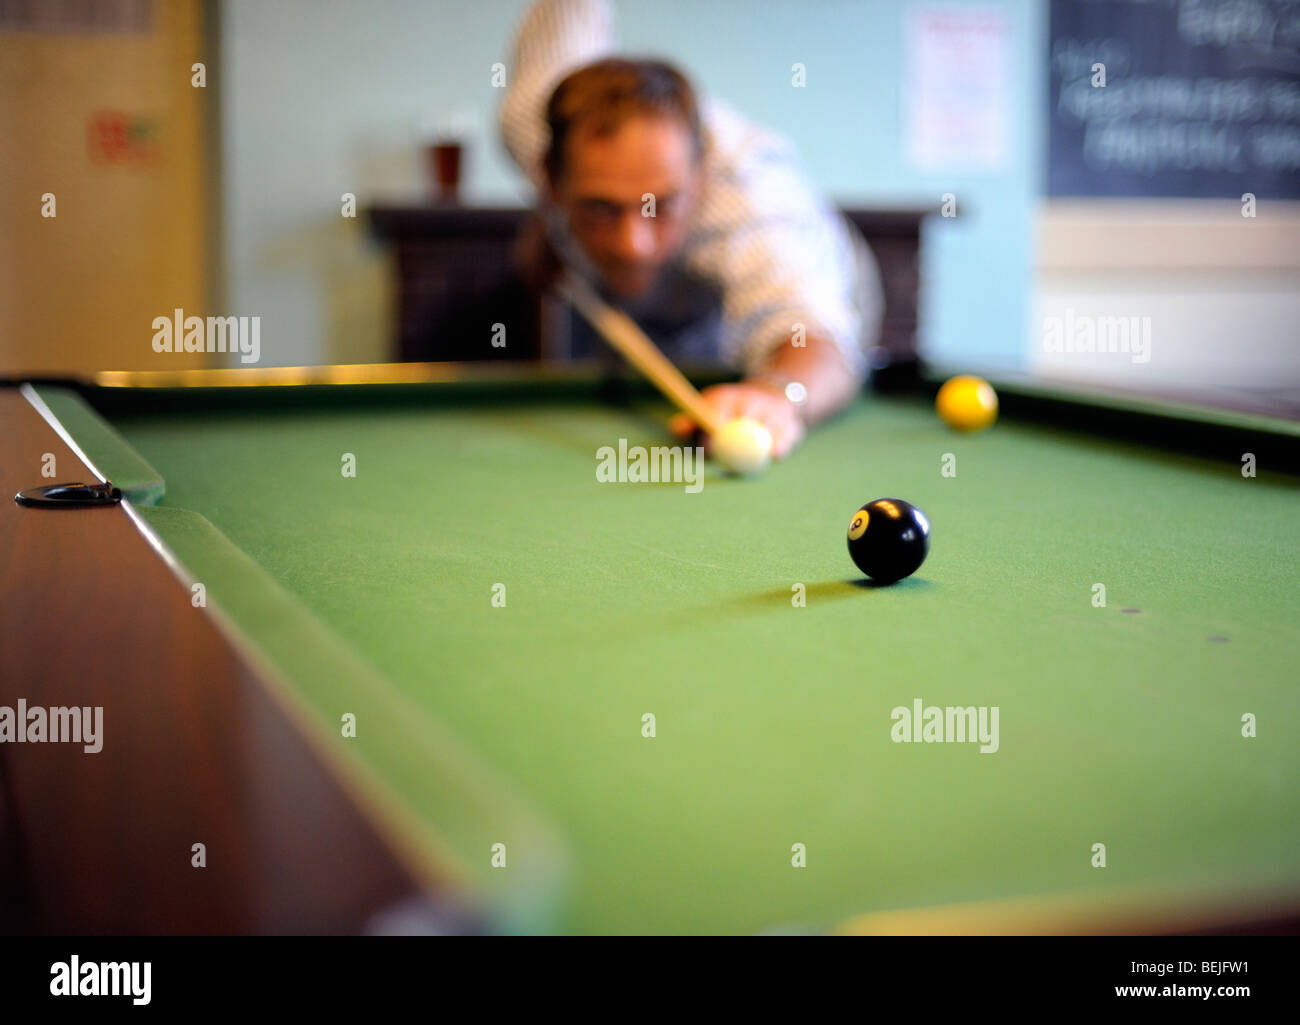 Potting the black in a game of pool - Stock Image